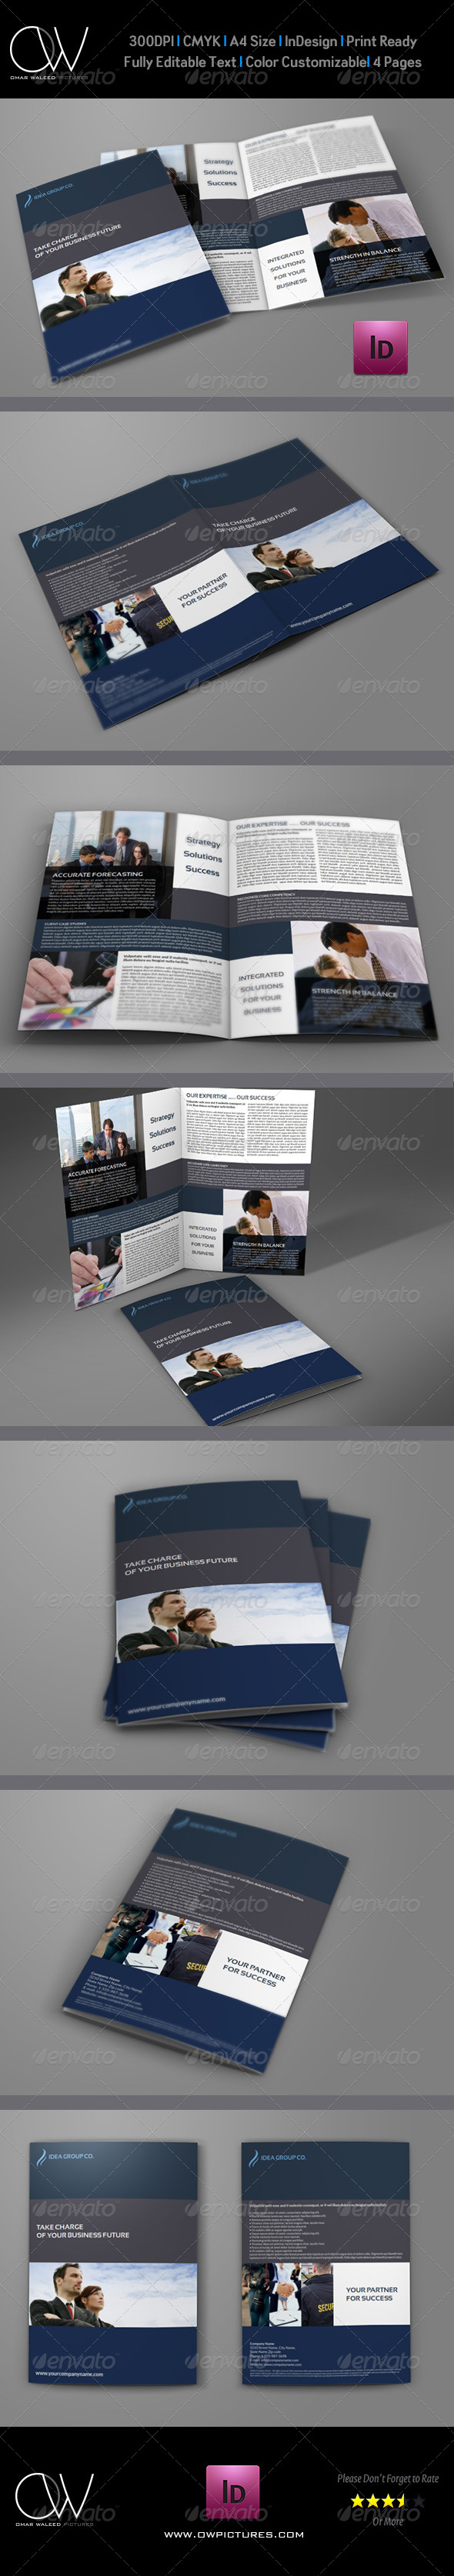 Company Brochure Bi-Fold Template Vol.14 - Corporate Brochures